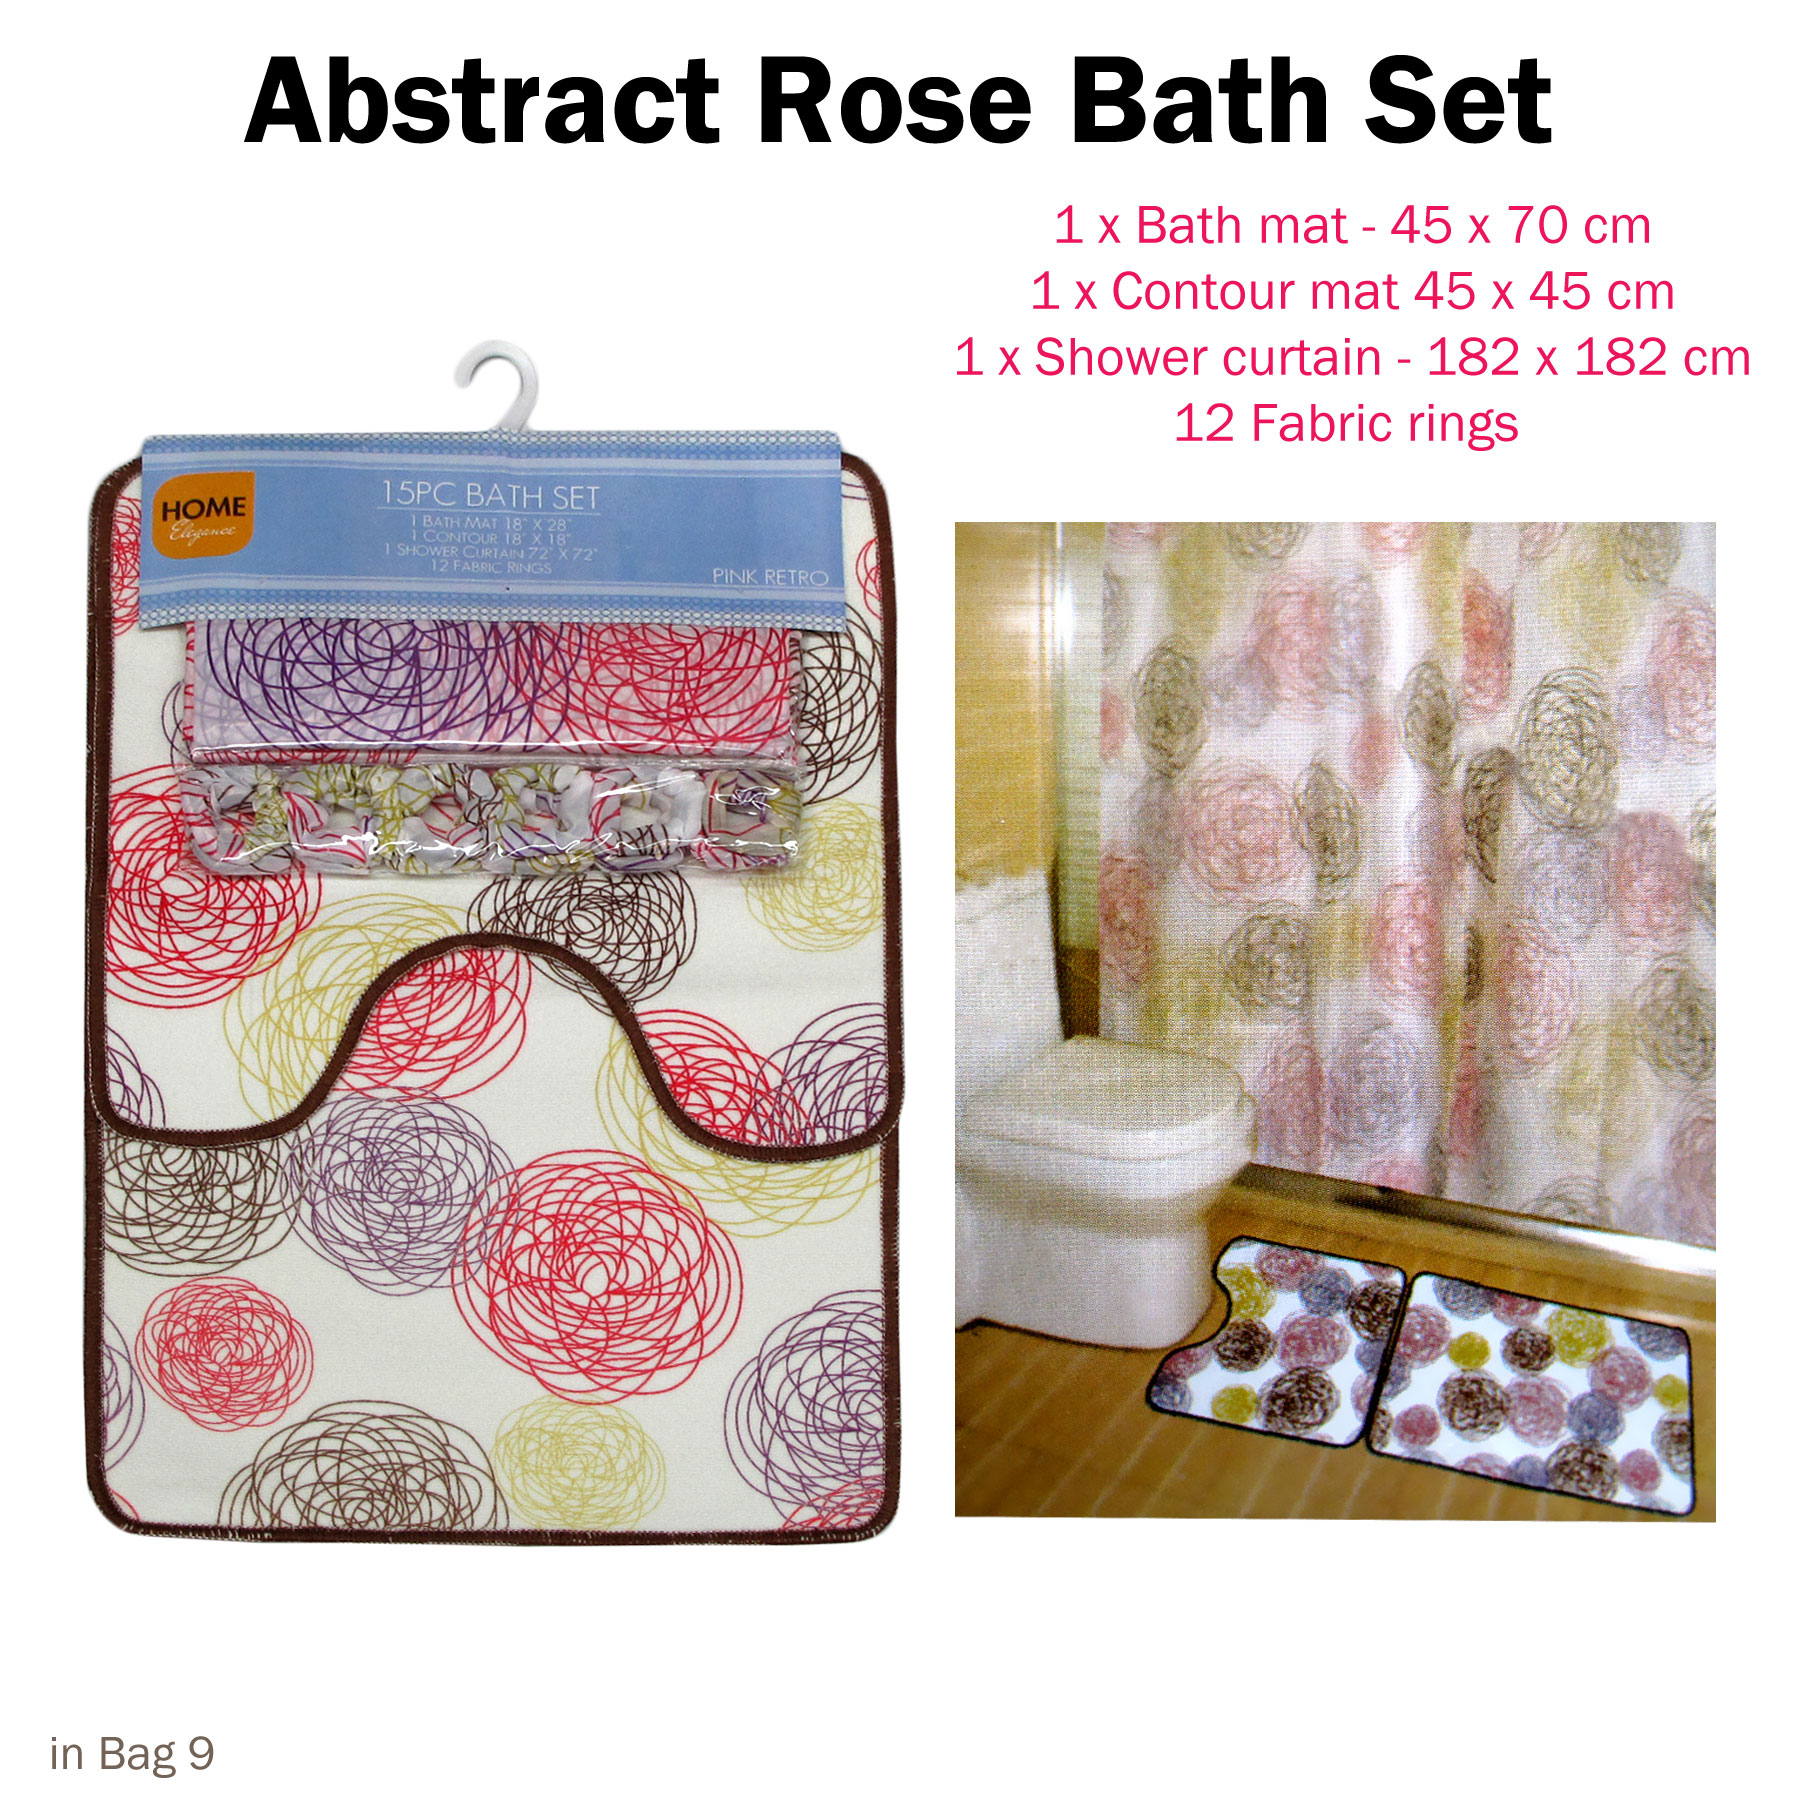 Details About 3 Pce Abstract Rose Bath Mat Contour Mat Shower Curtain With Rings